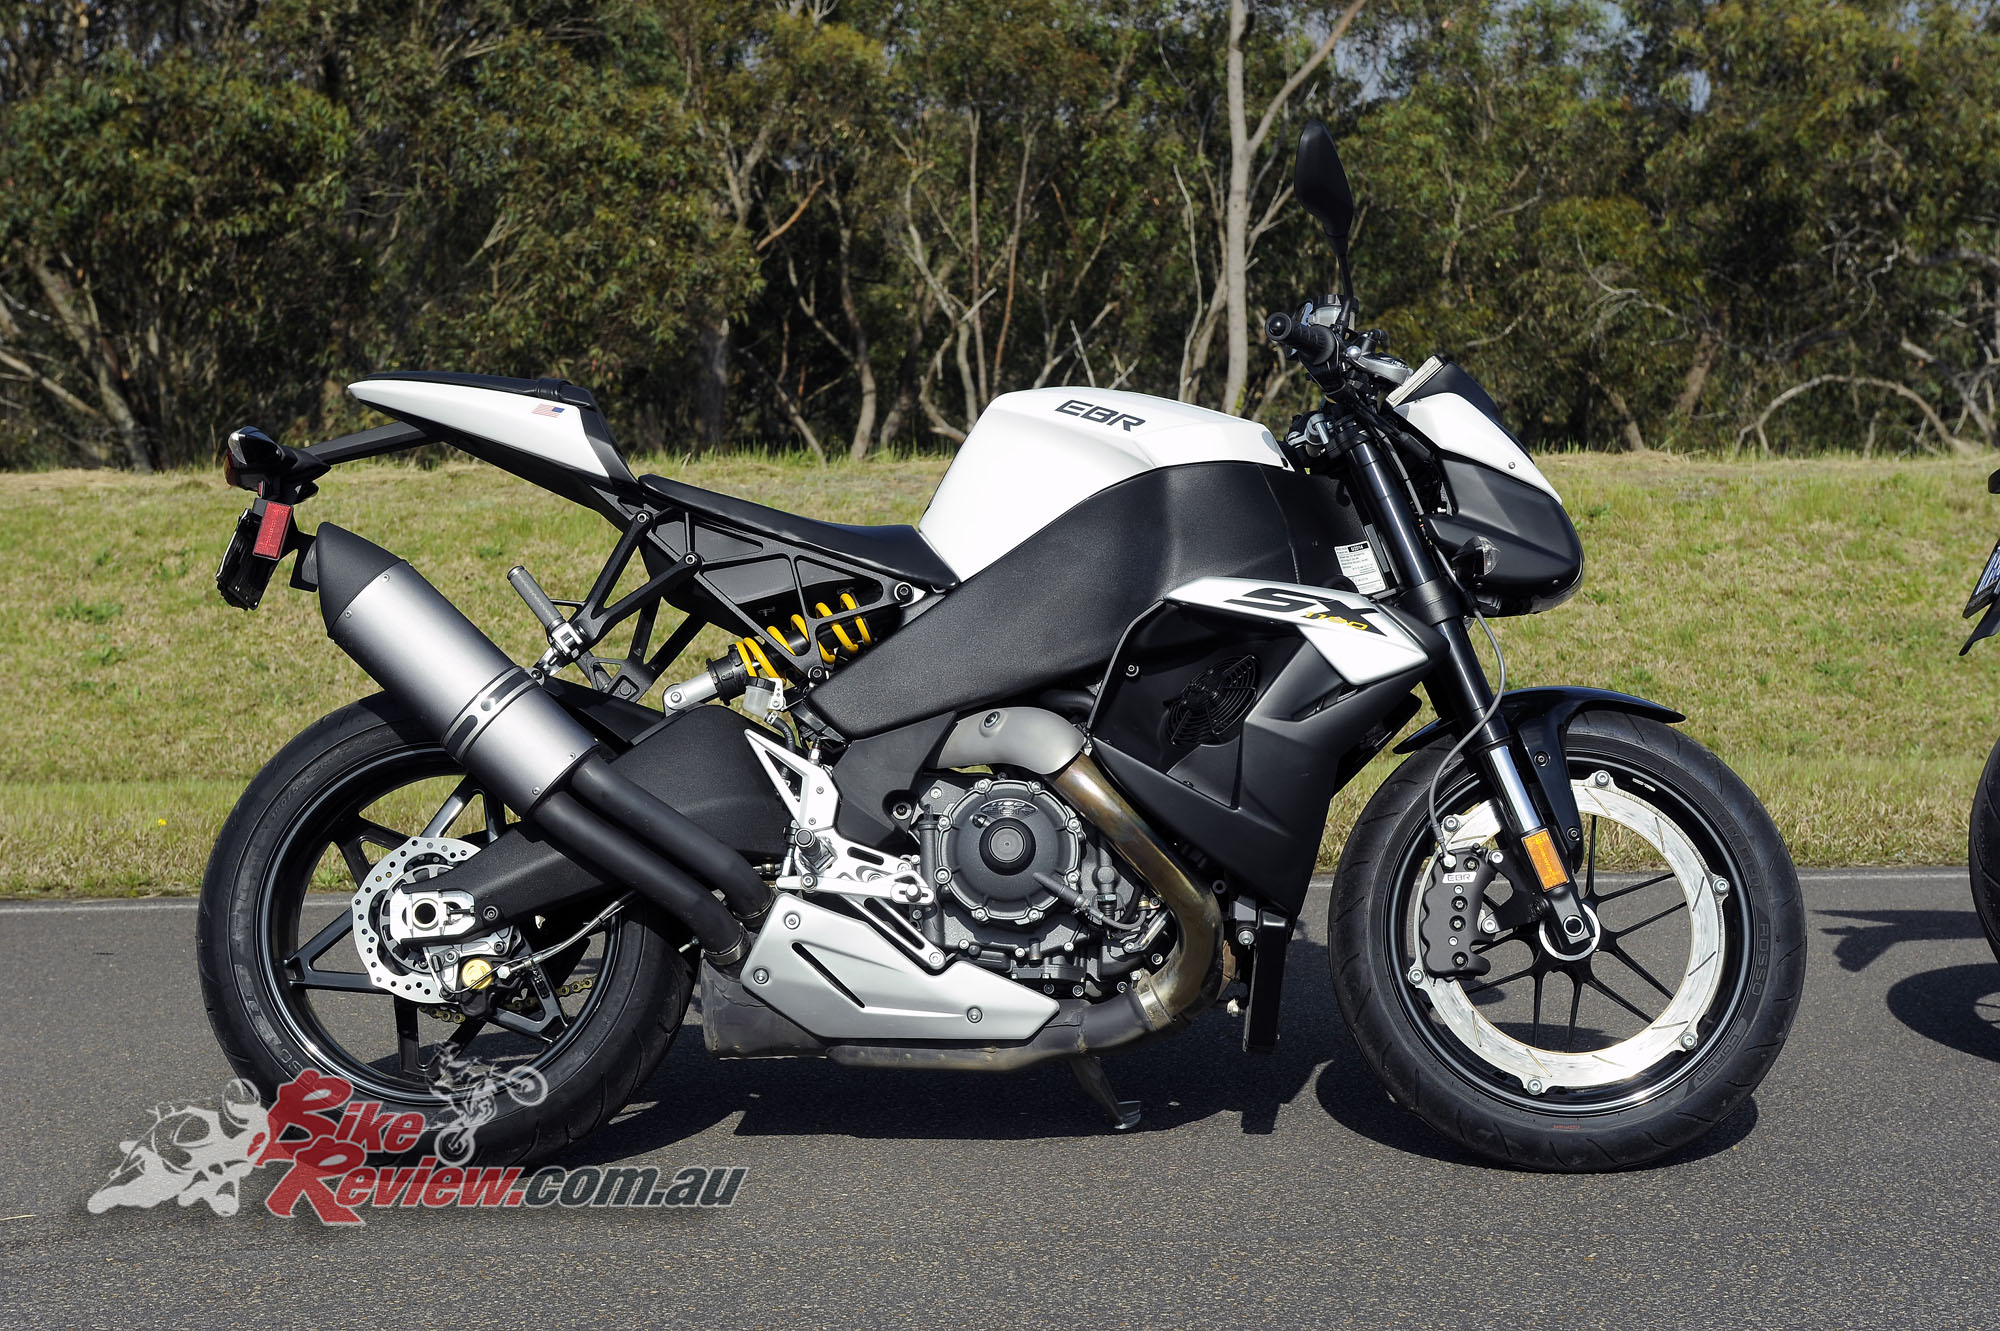 Big Bore Nakedbike - EBR 1190SX - Bike Review copy